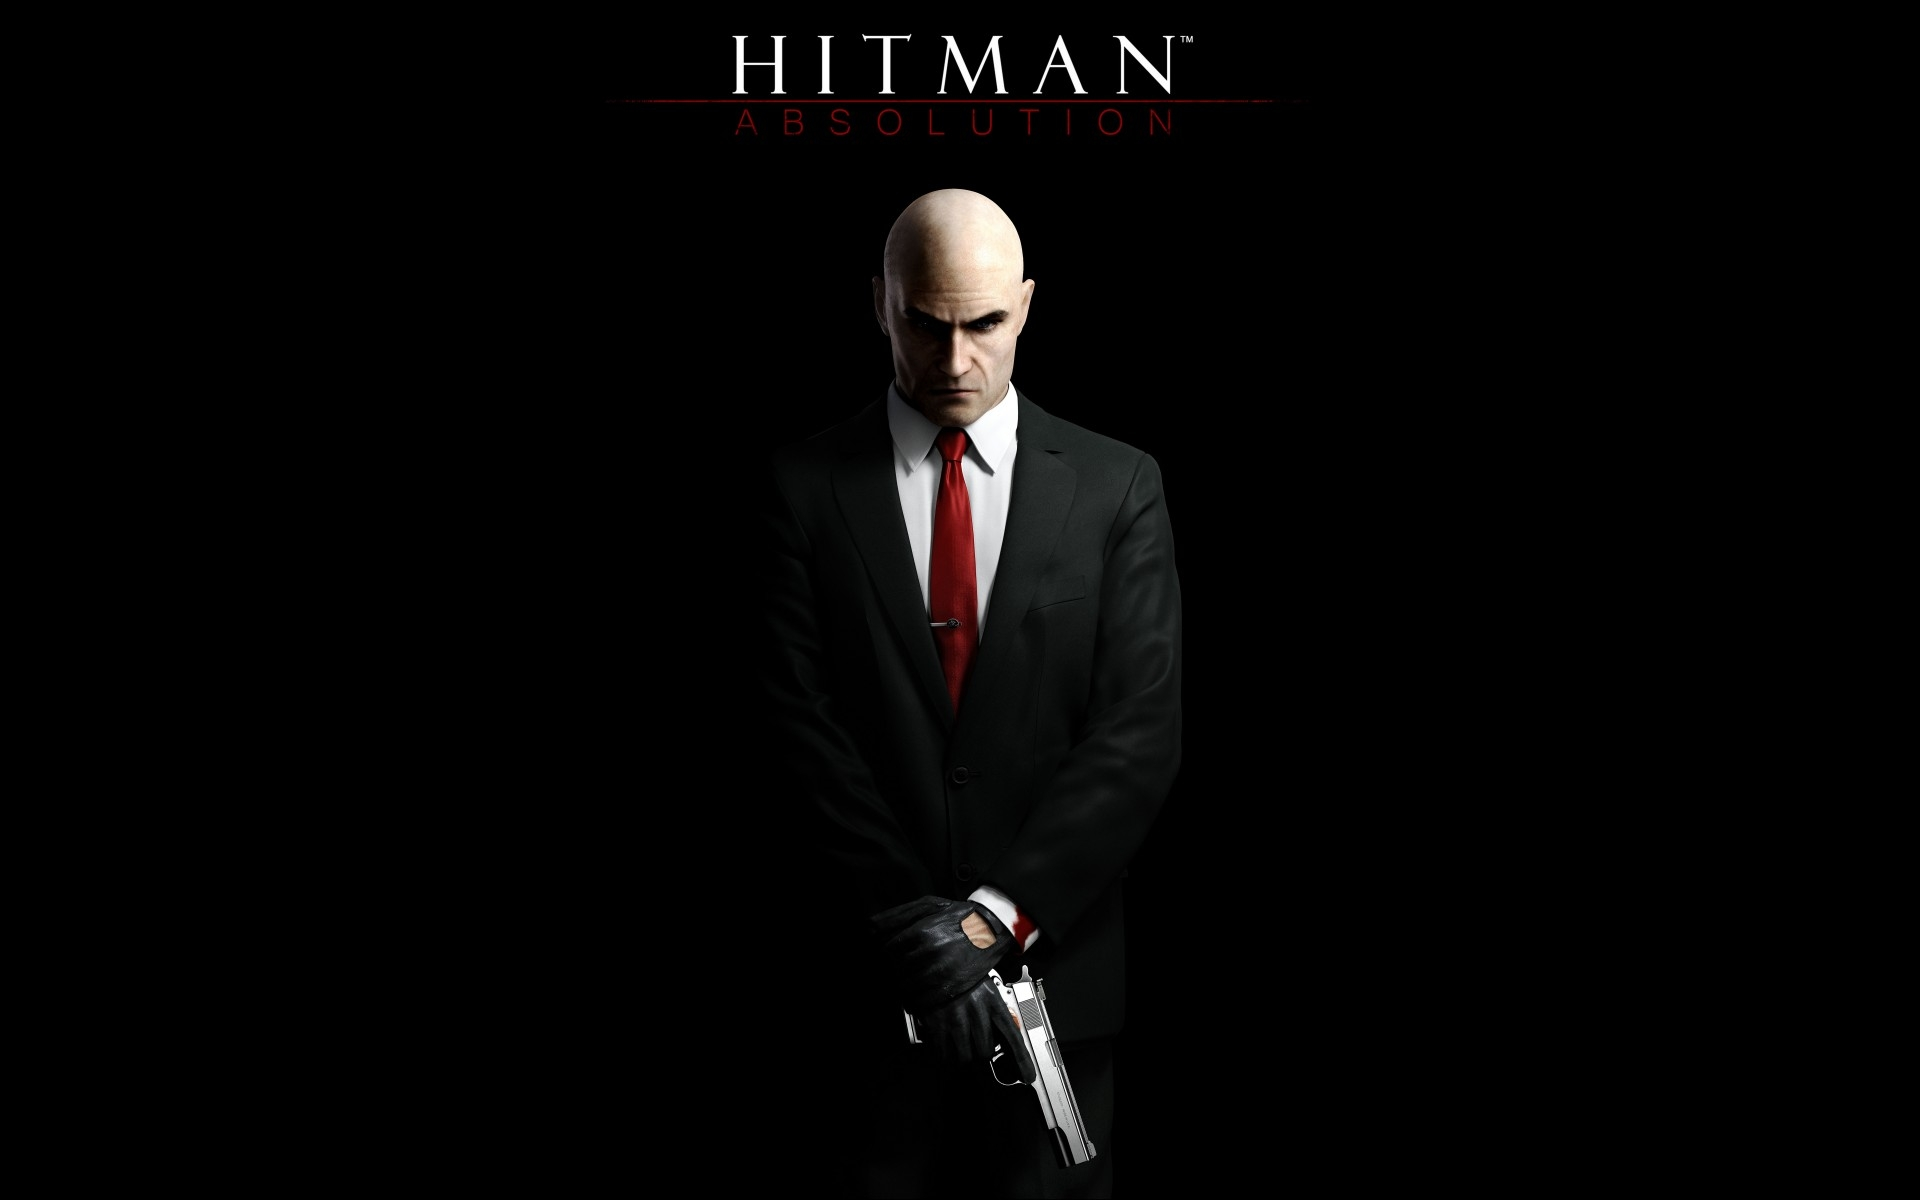 пистолет, hitman absolution, silverballer, хитман